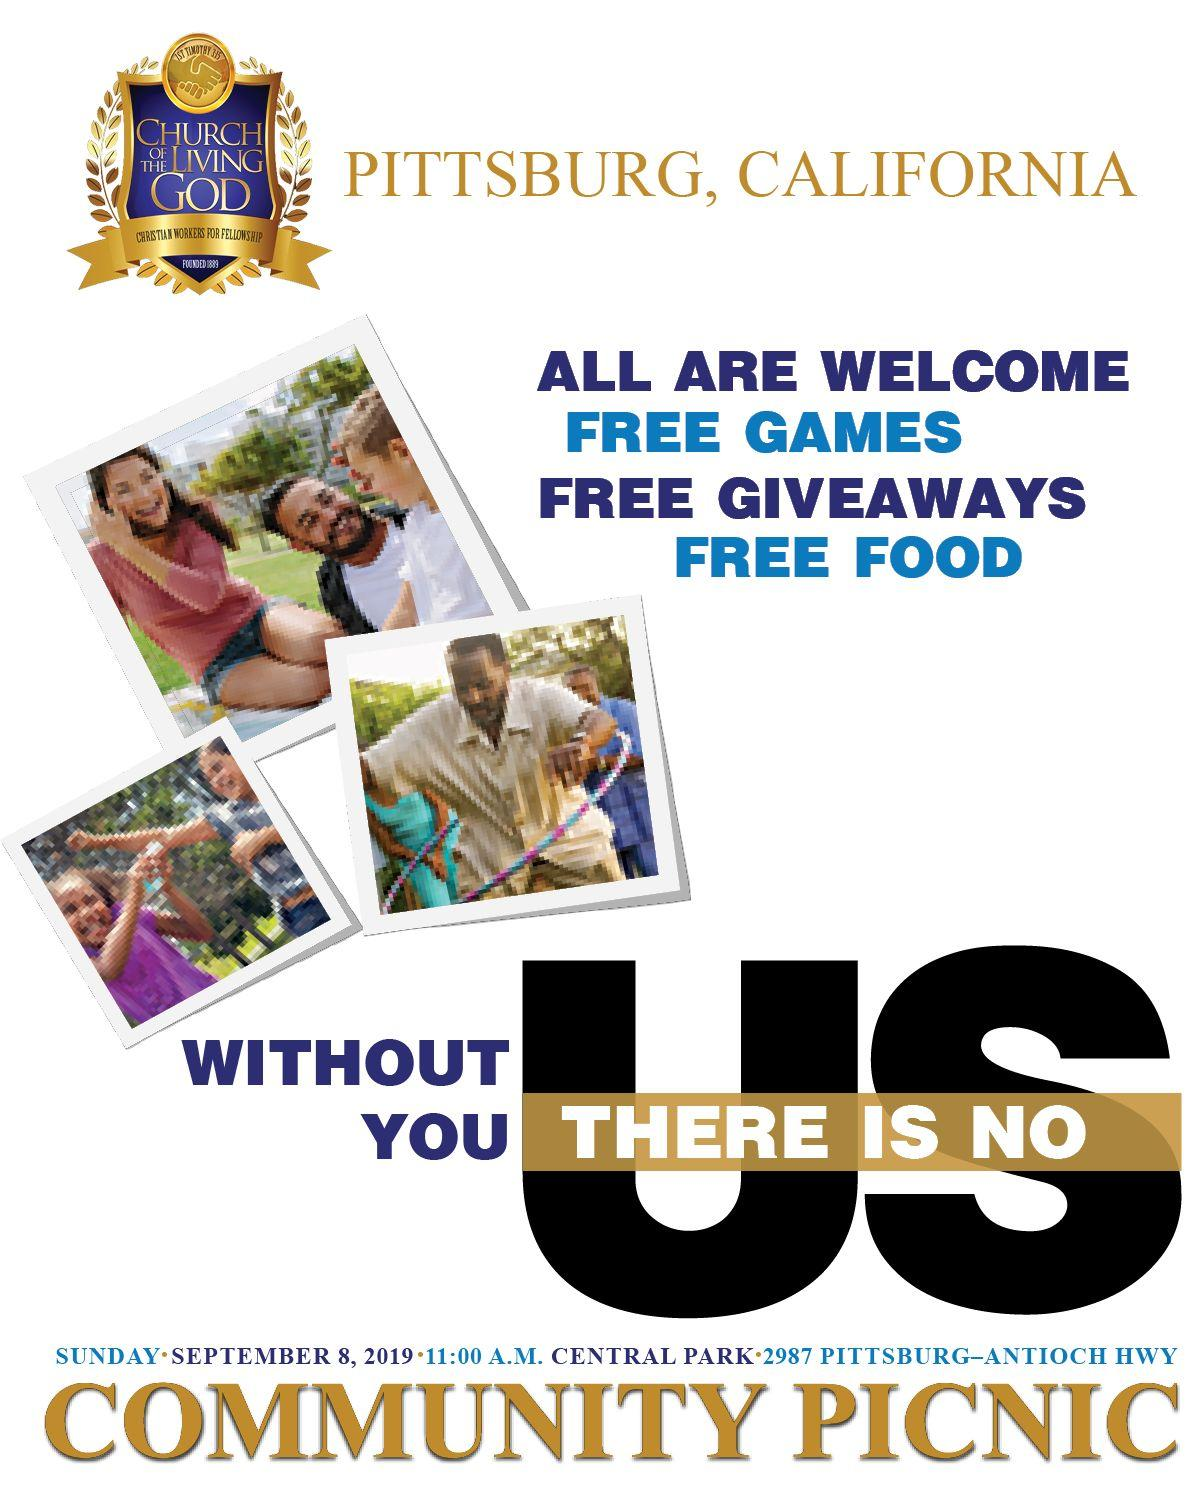 Church of the Living God-Pittsburg 2019 Community Picnic in the Park